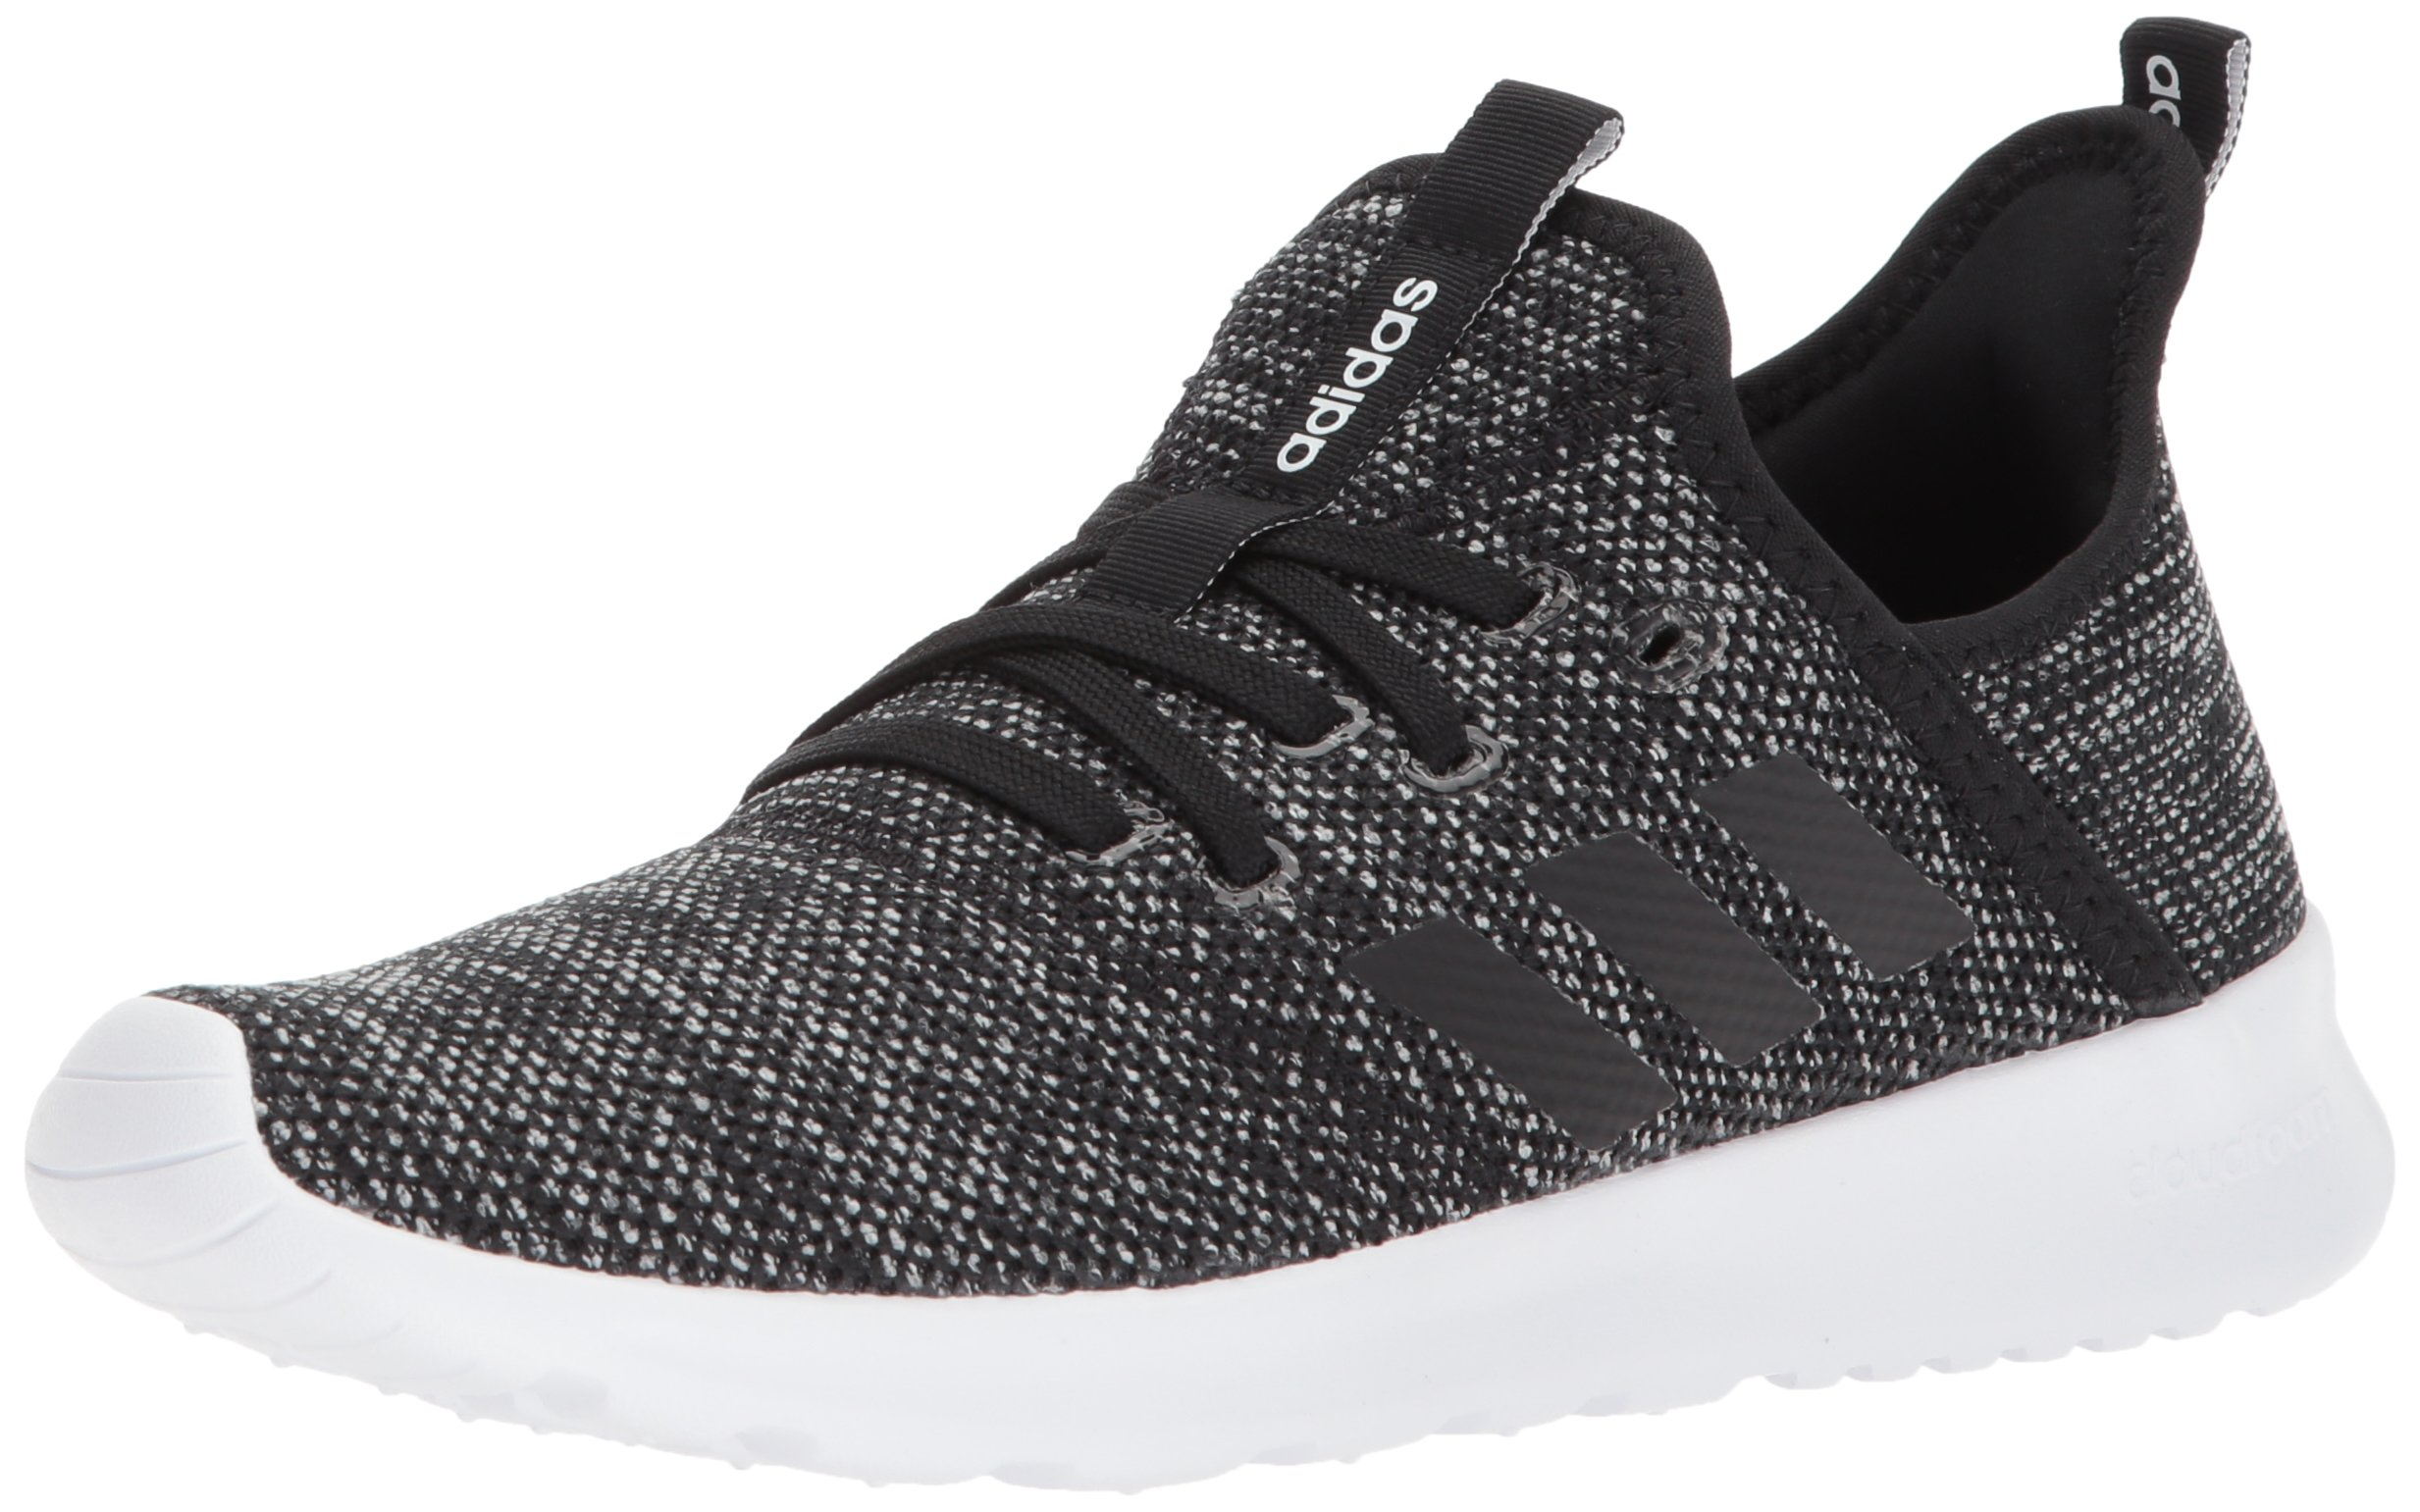 adidas Performance Women's Cloudfoam Pure Running Shoe, Black/Black/White, 5 M US by adidas (Image #1)